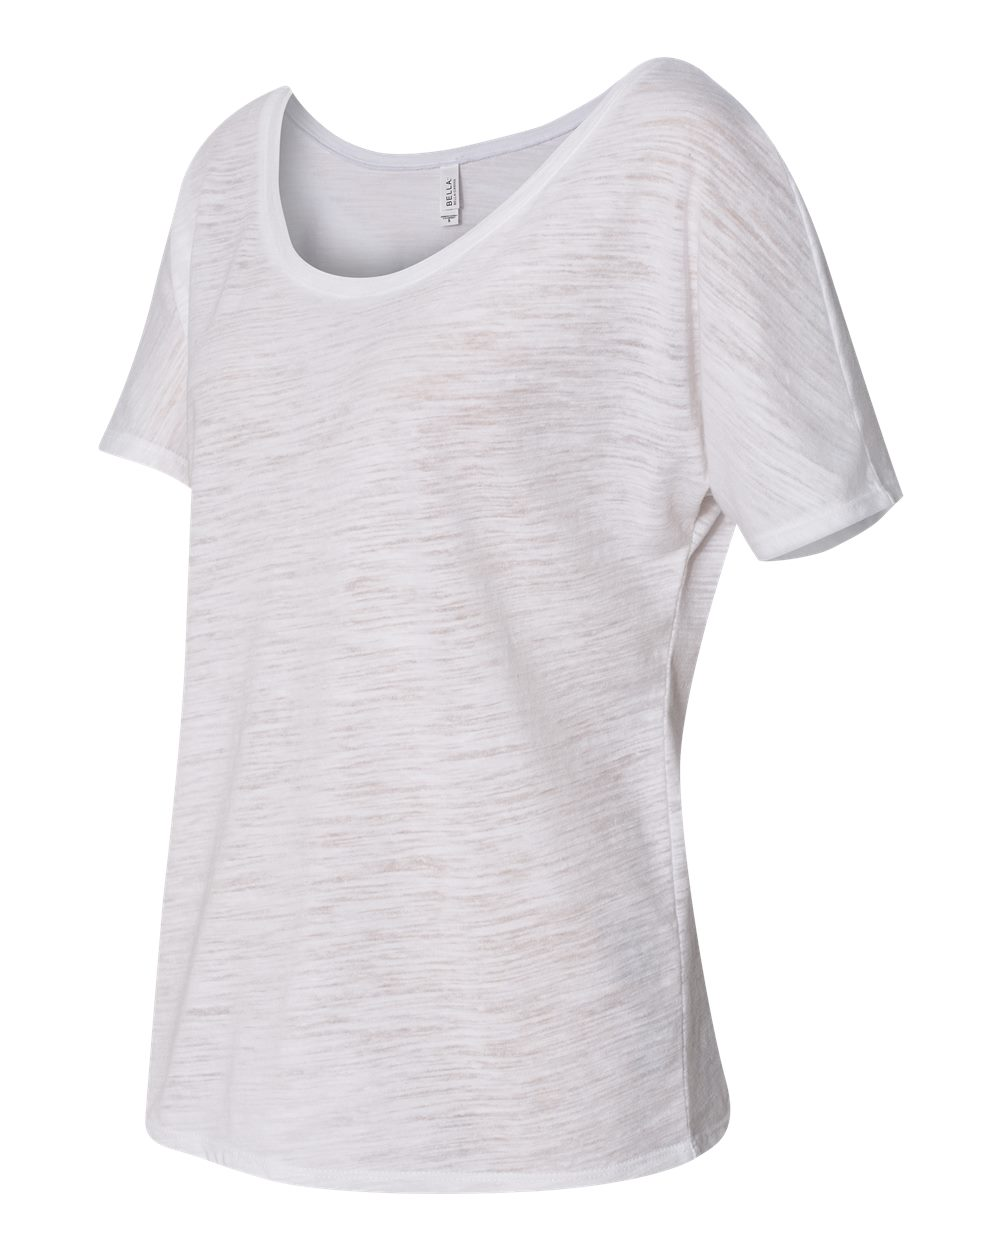 a14b7d814 Tap to expand · Home / T-Shirts / Bella + Canvas 8816 – Women's Slouchy Tee